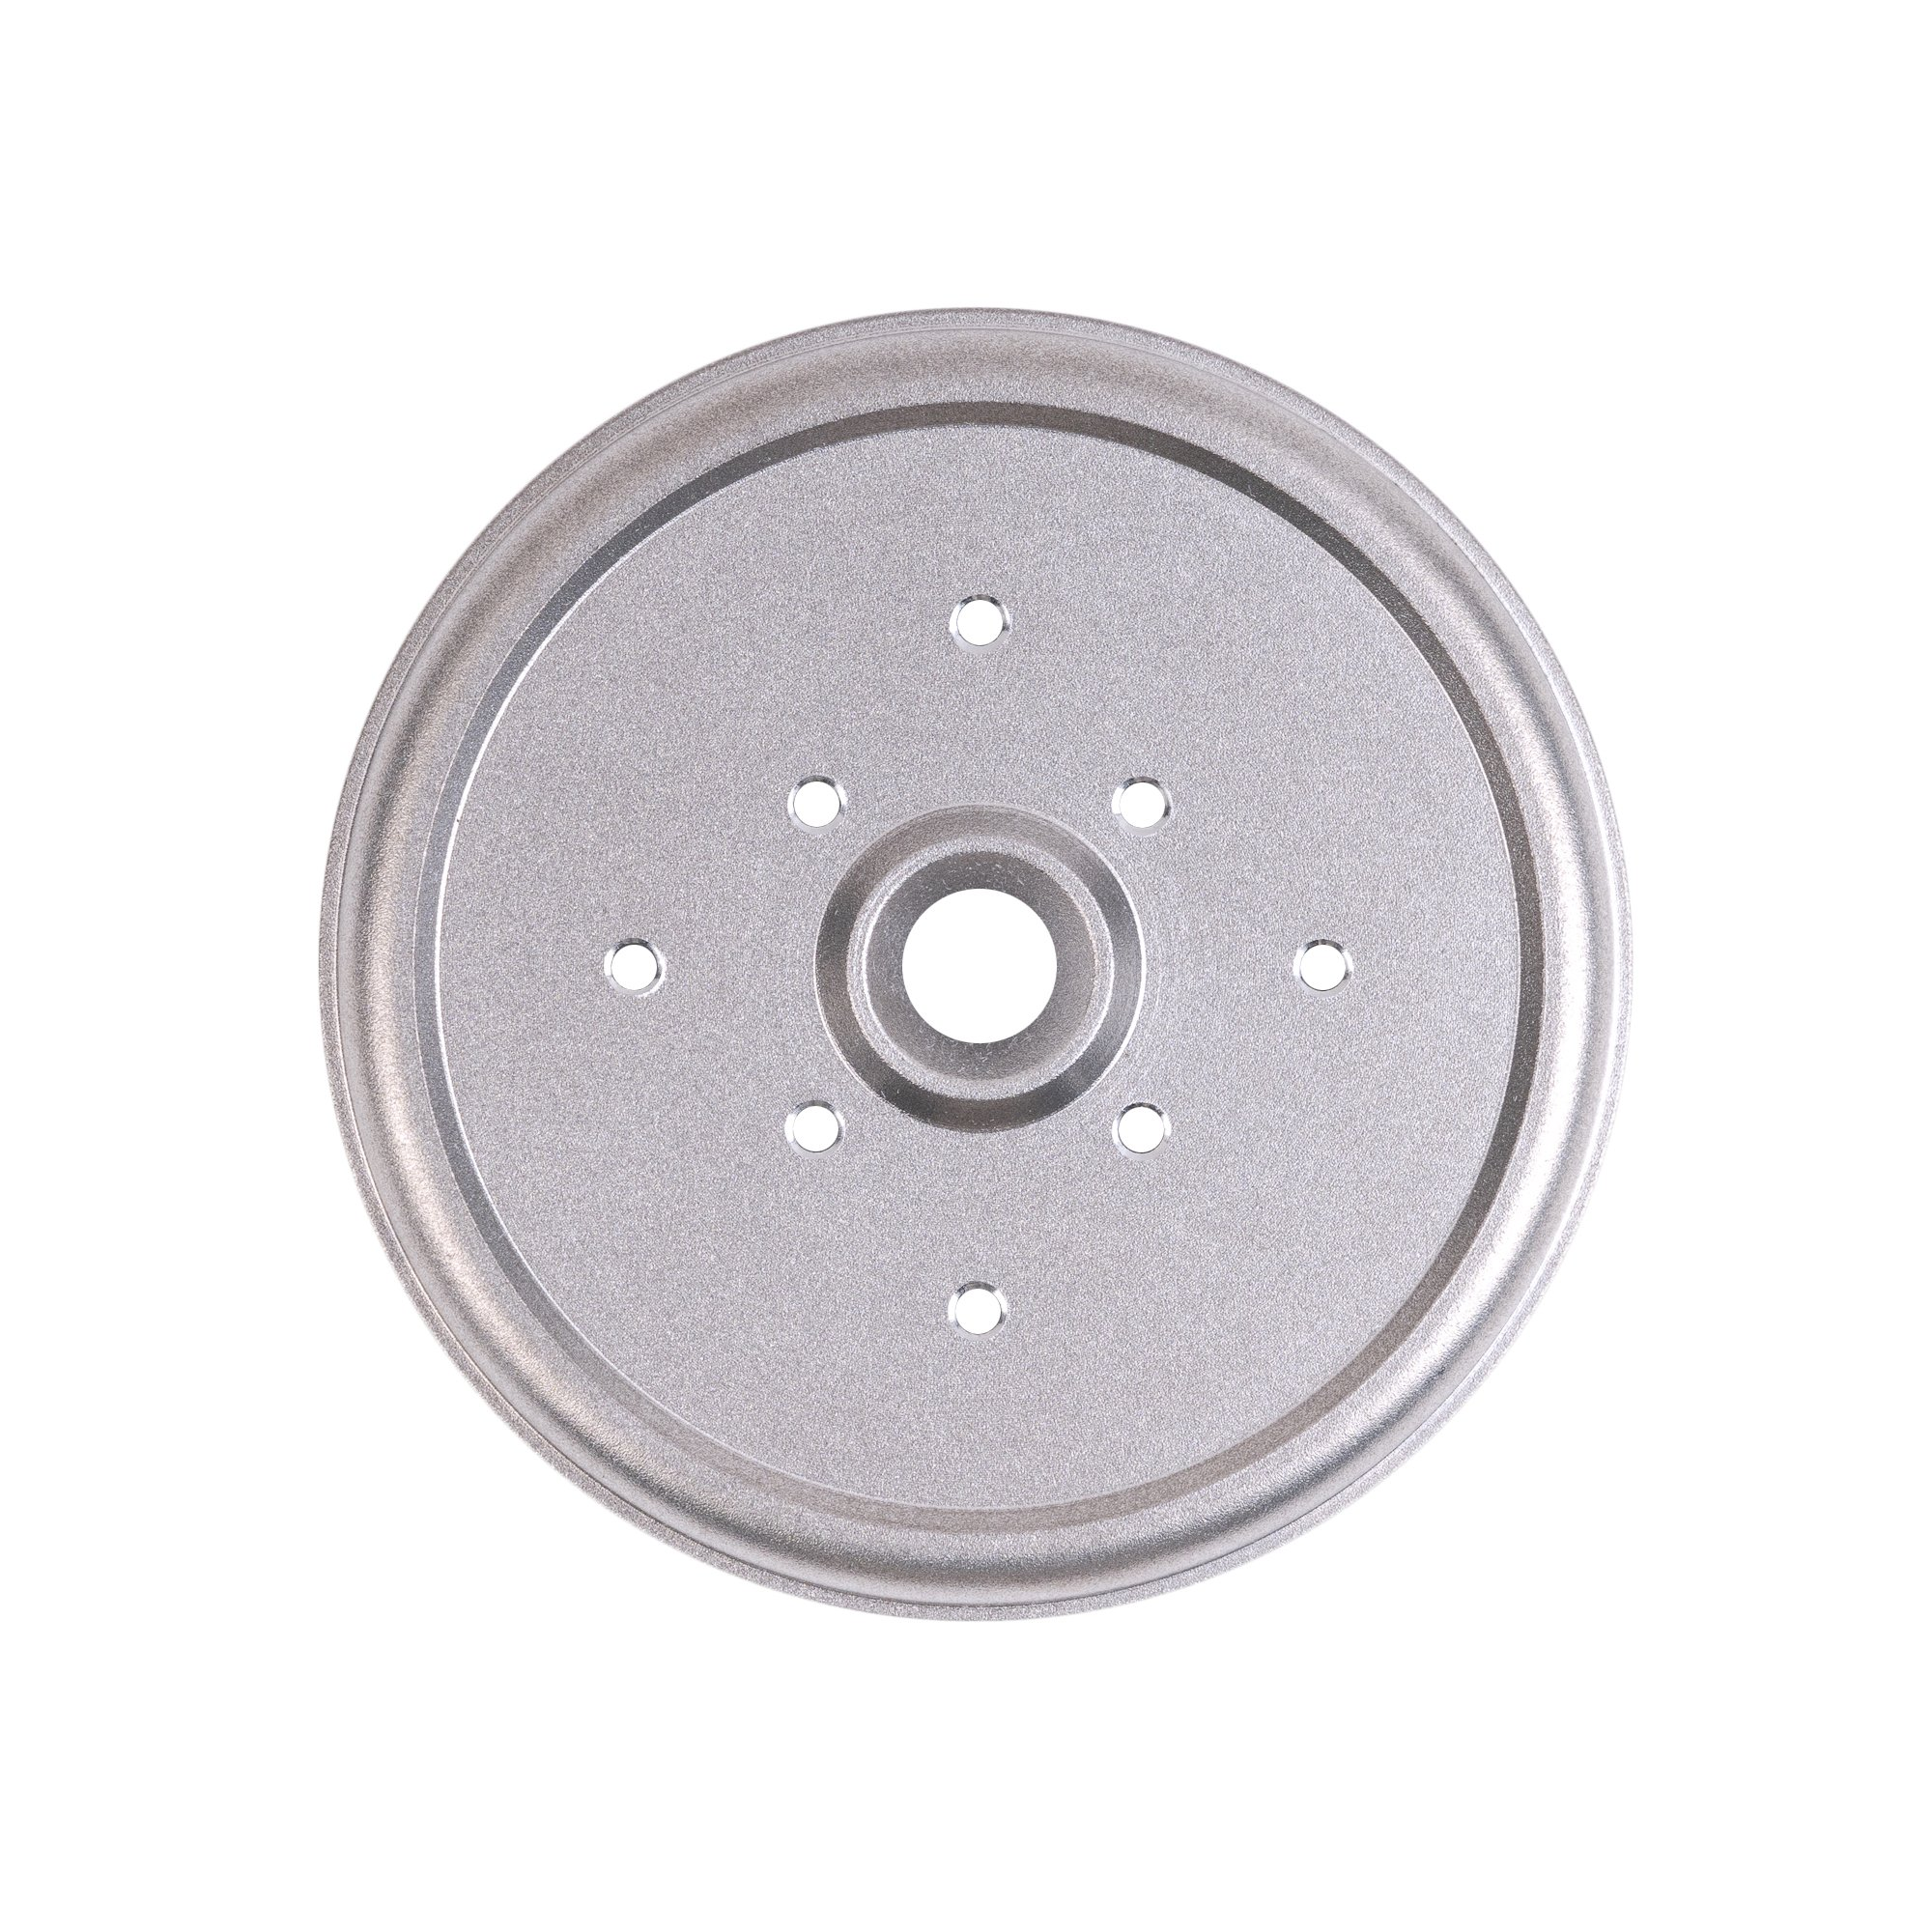 Vidastech Head Cap/Stainless Diffuser Plate for Nuova Simonelli, NEW